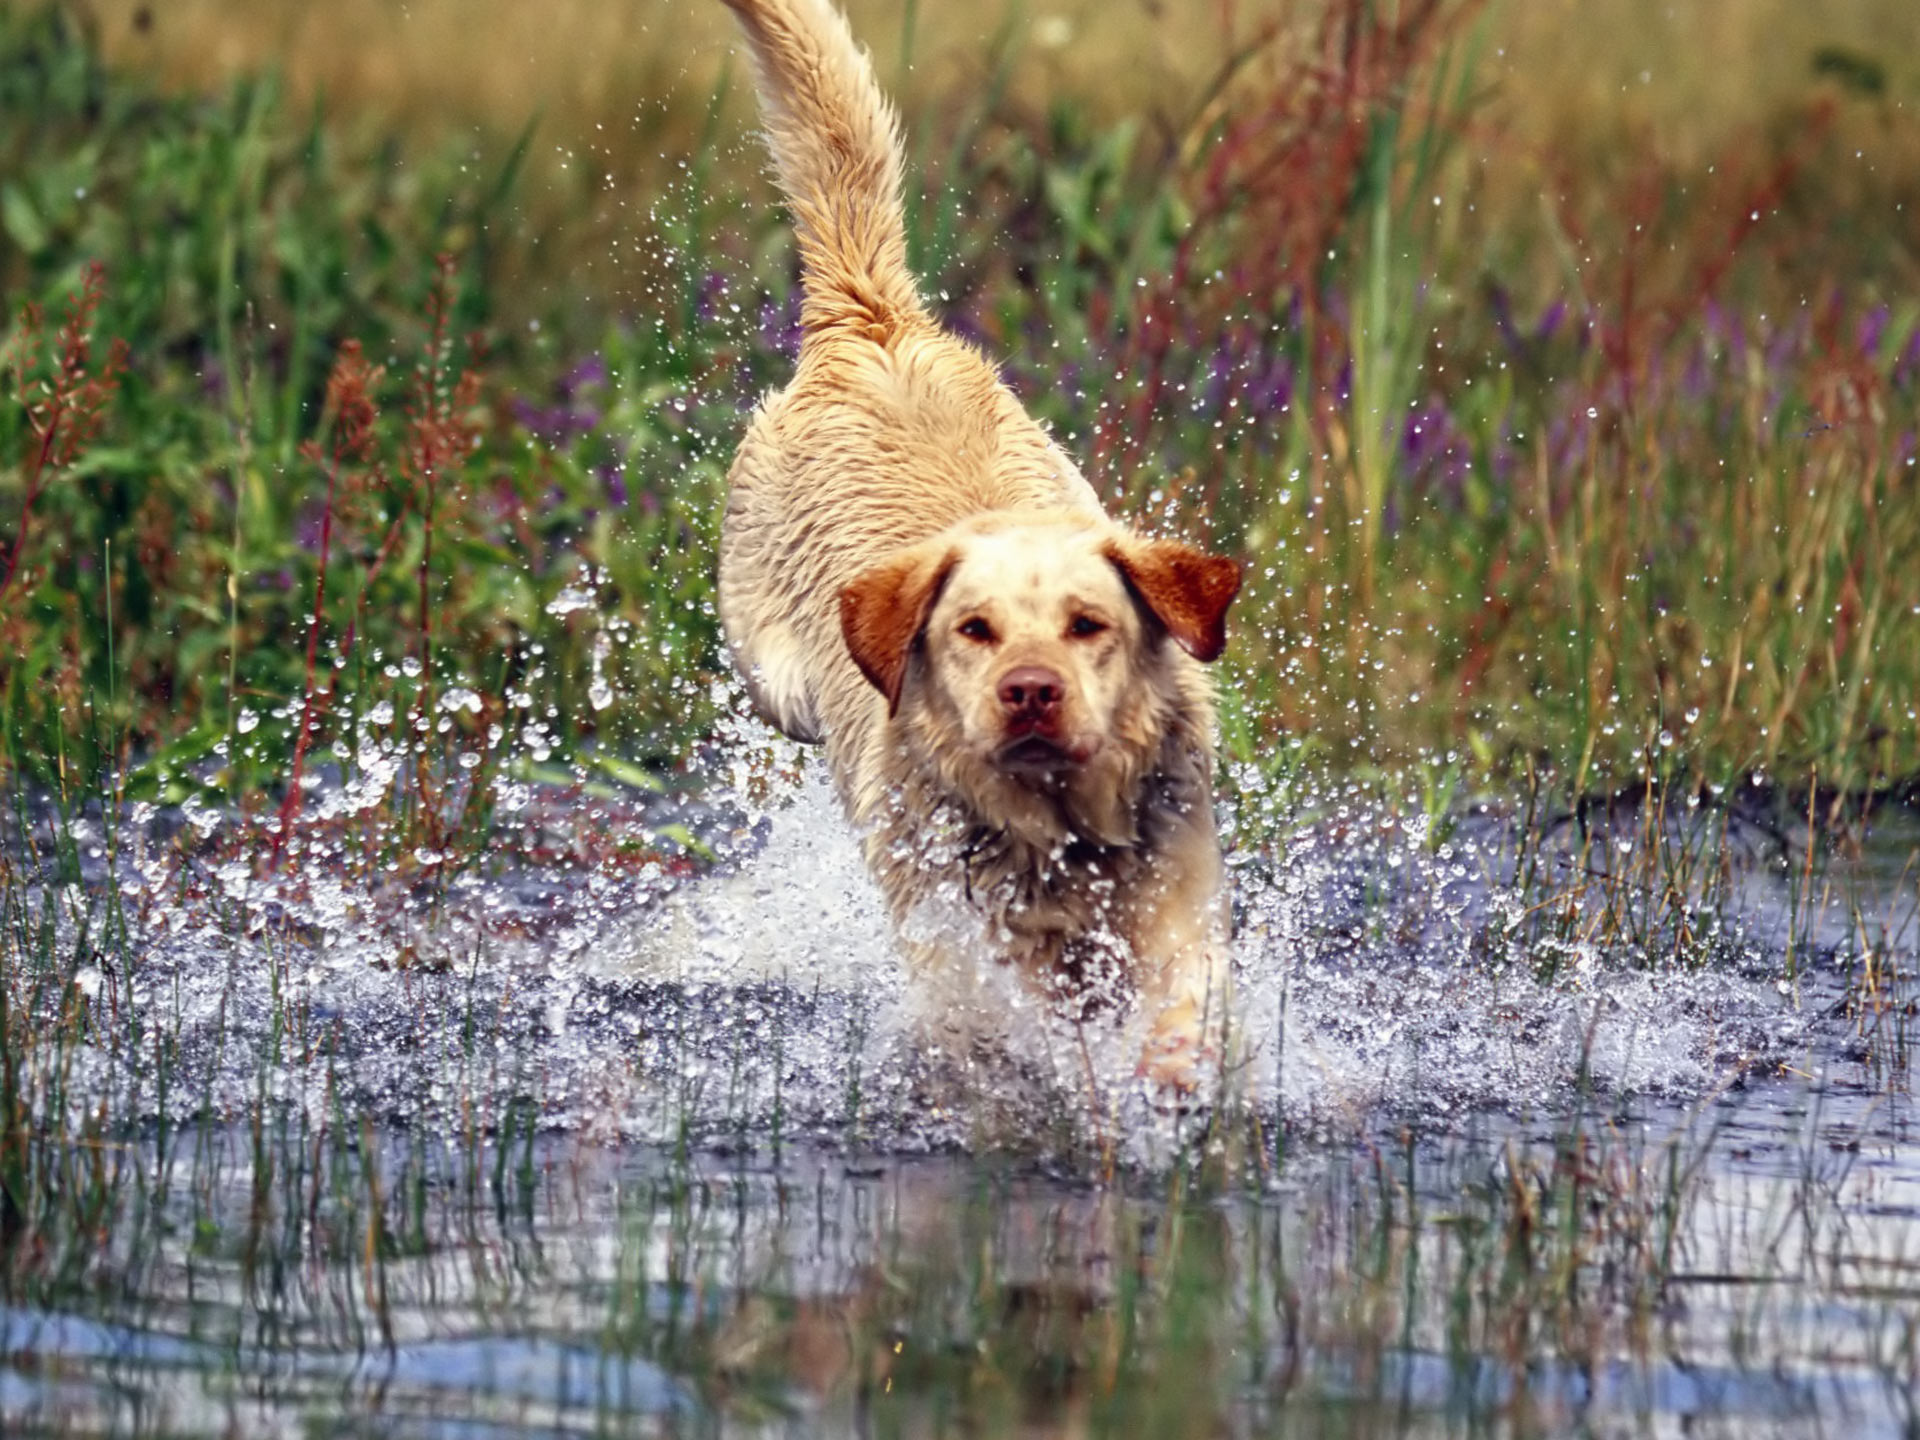 Running Labrador Retriever dog wallpaper